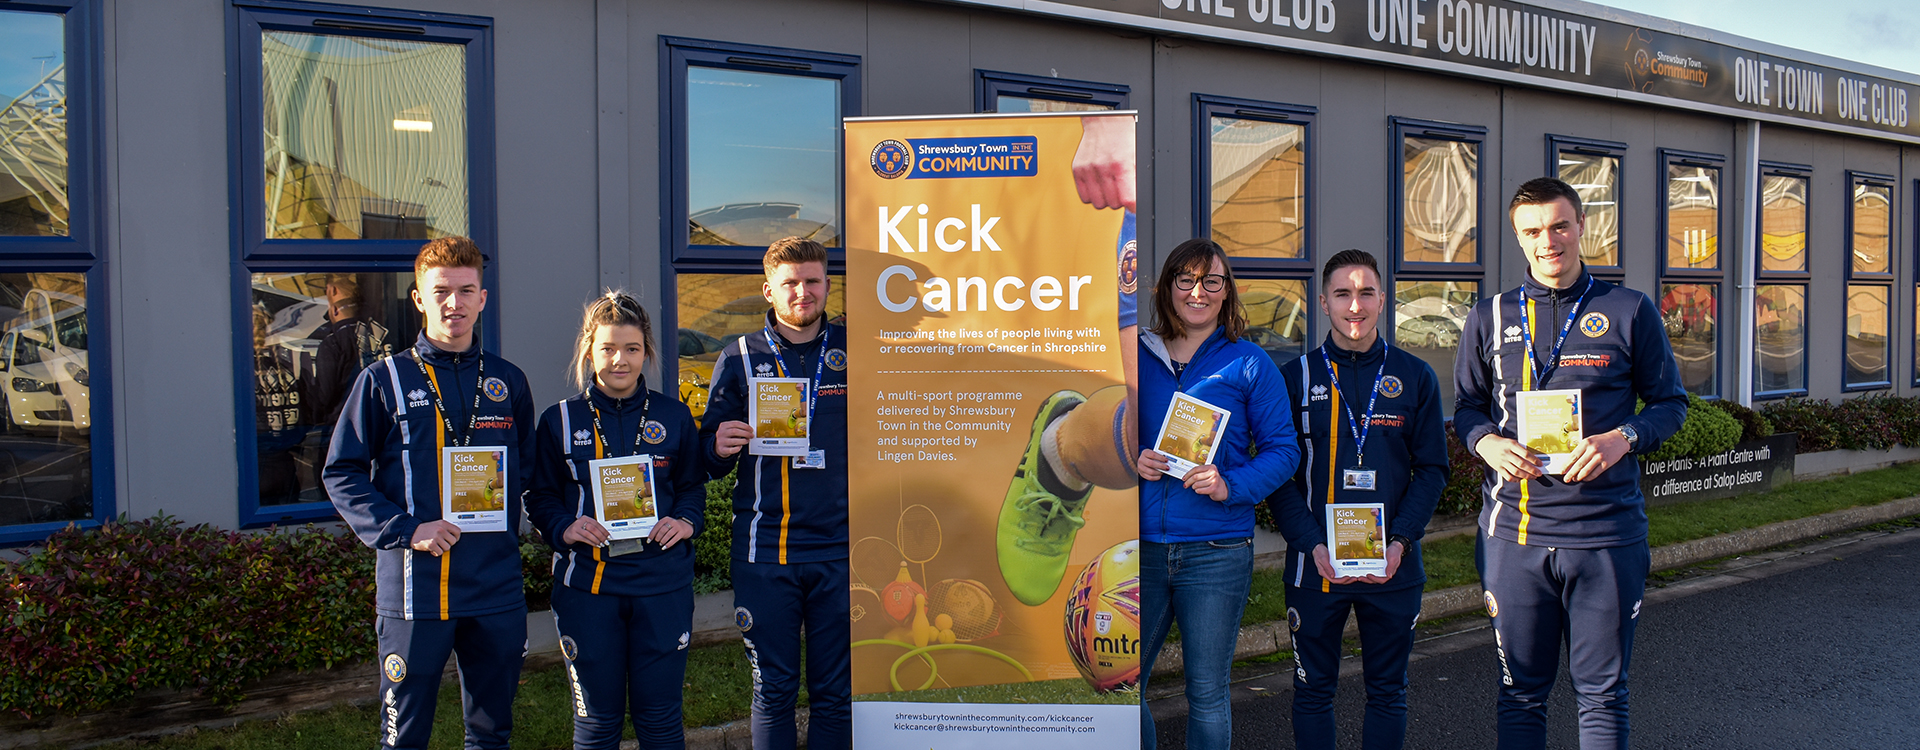 Students and Lingen Davies pose with Kick Cancer banner